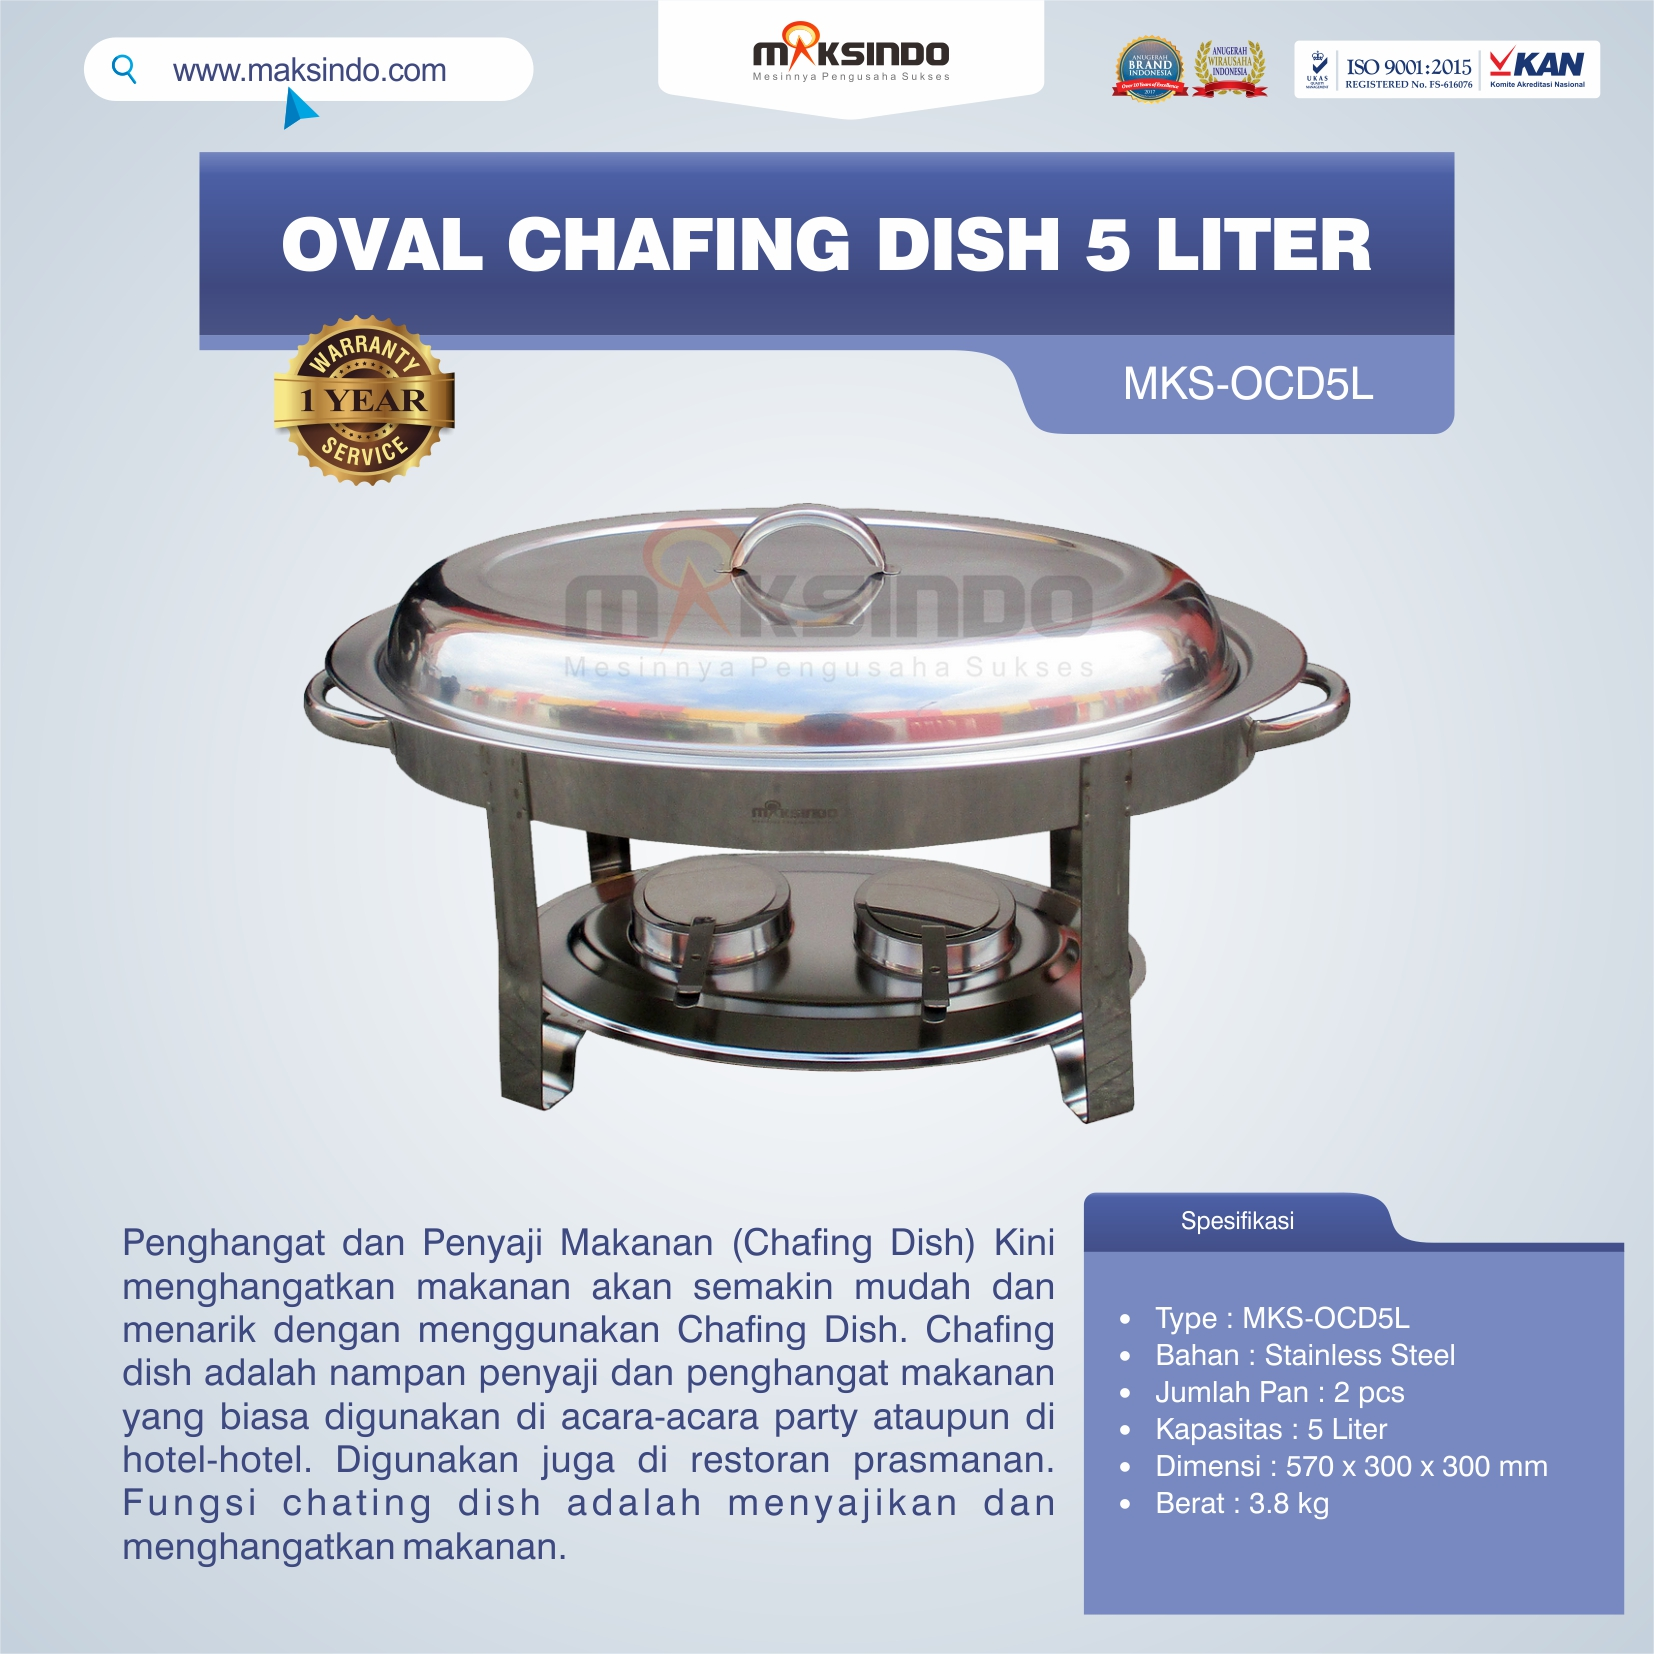 Oval Chafing Dish 5 Liter